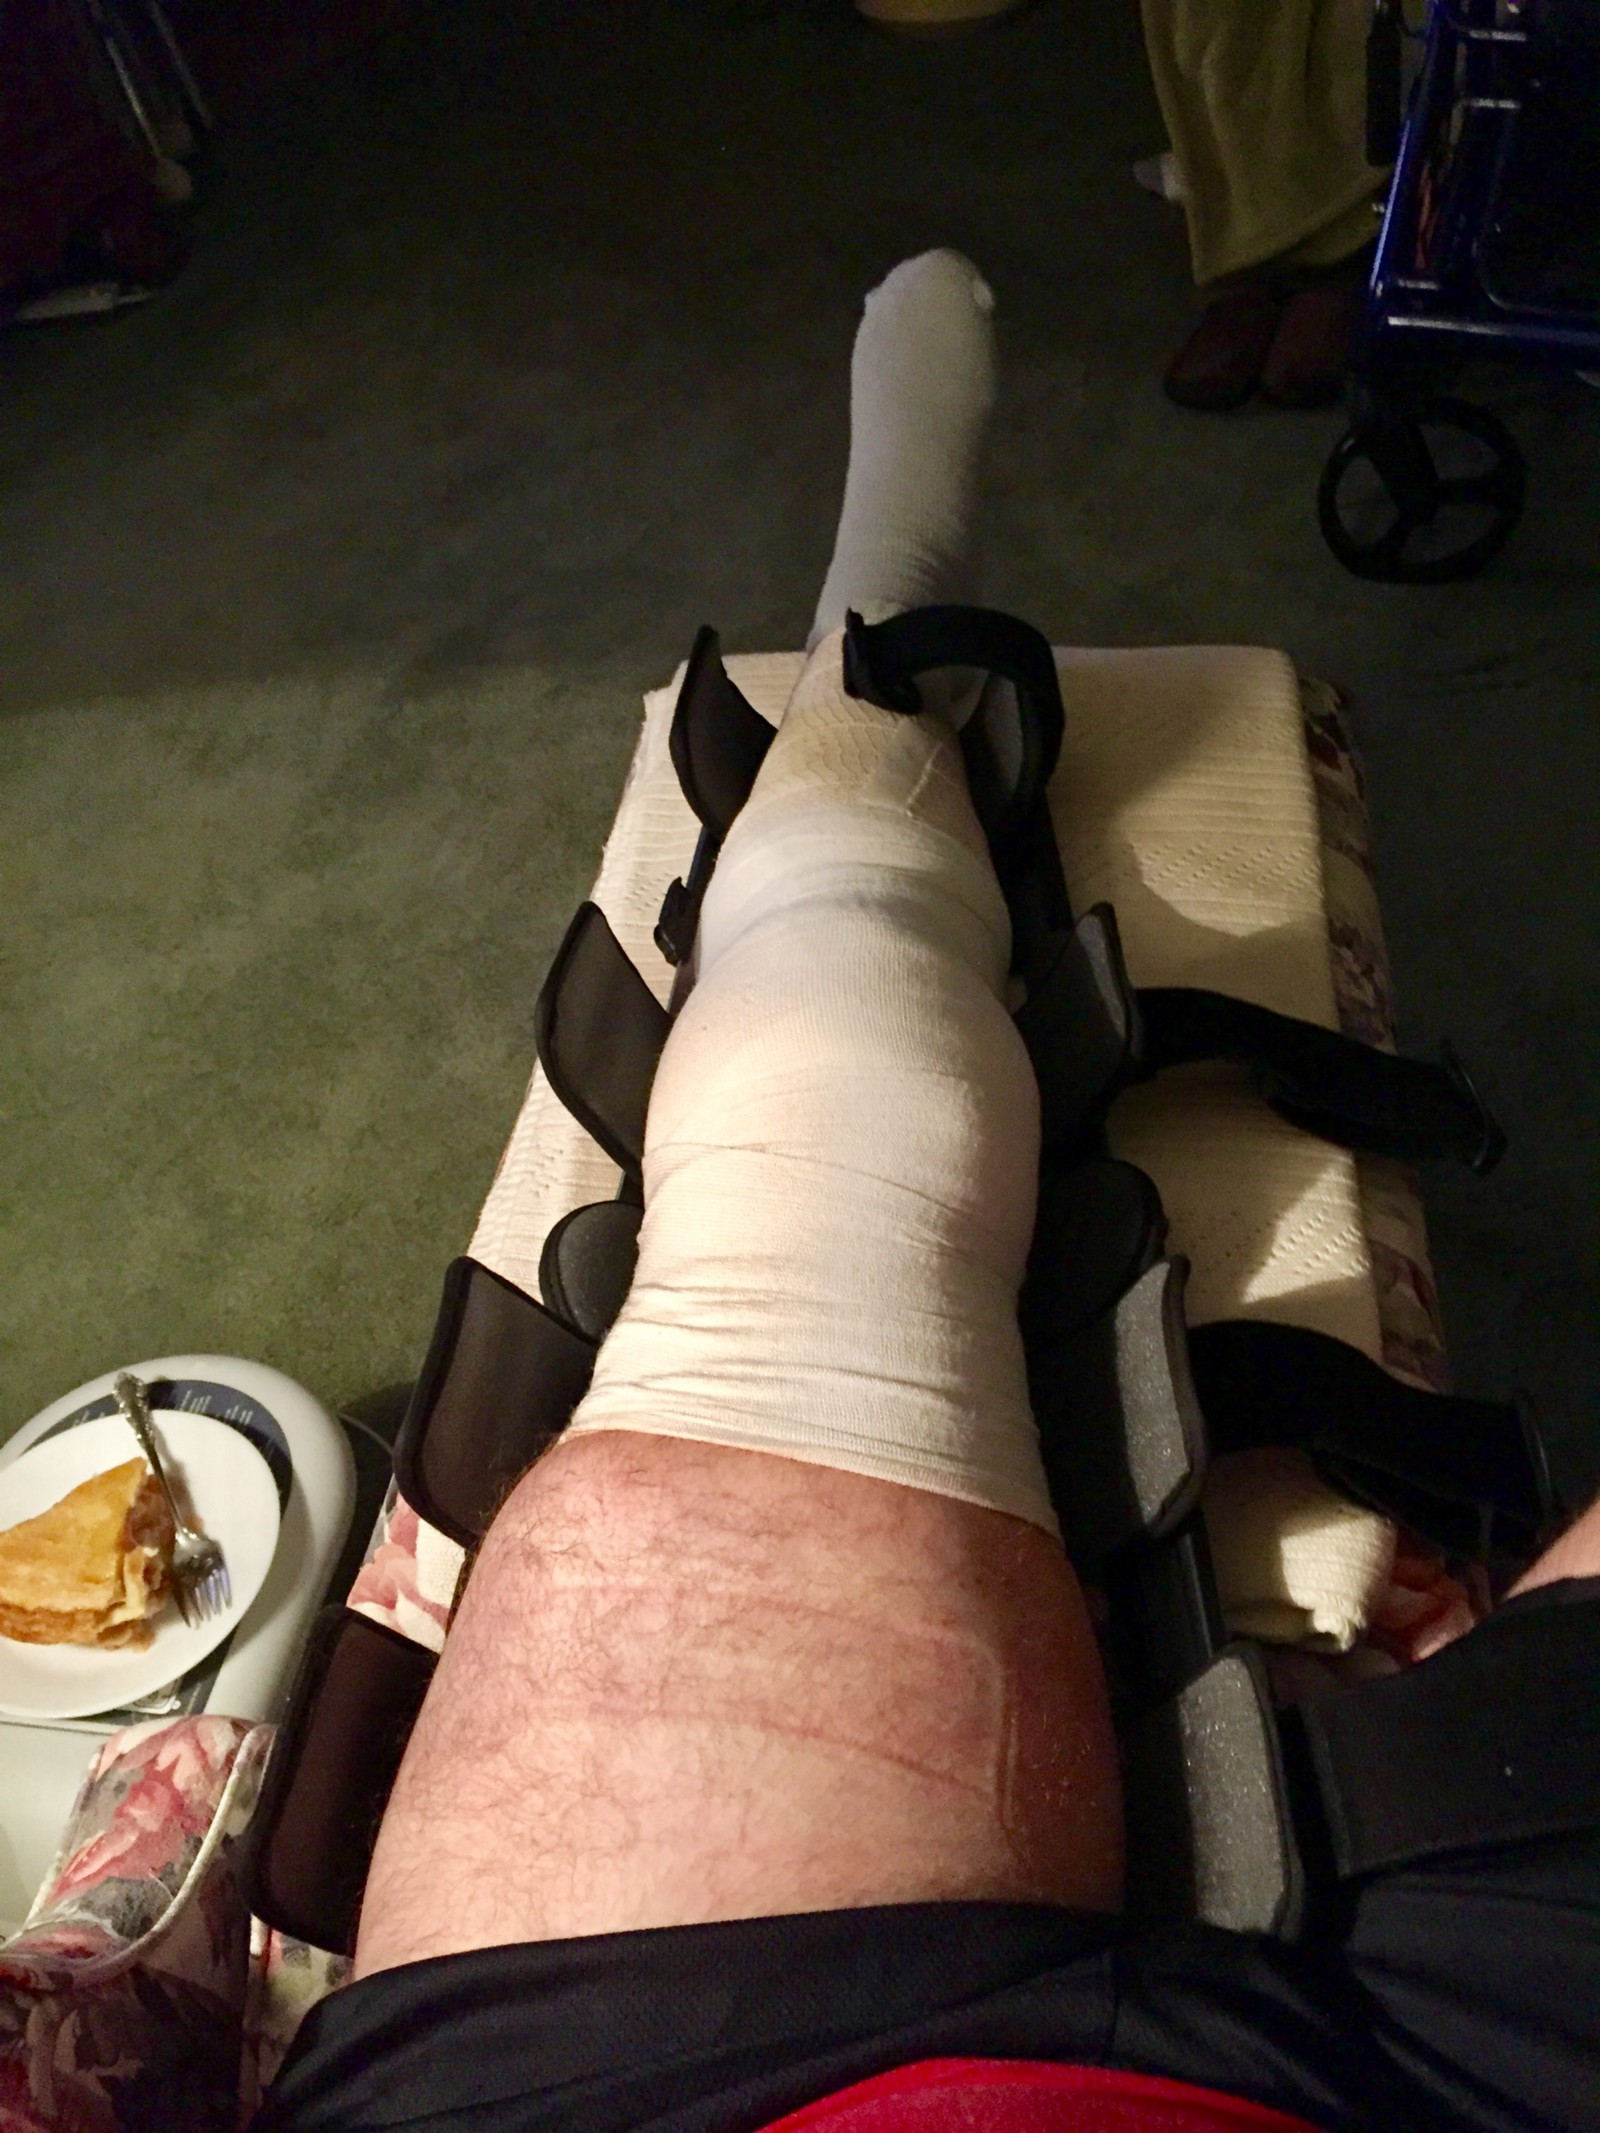 c9f5b7a0d8 The top of the dressing had slowly worked its way down my thigh, but it was  still secure and covering well beyond the knee. I hadn't even unlocked the  ...